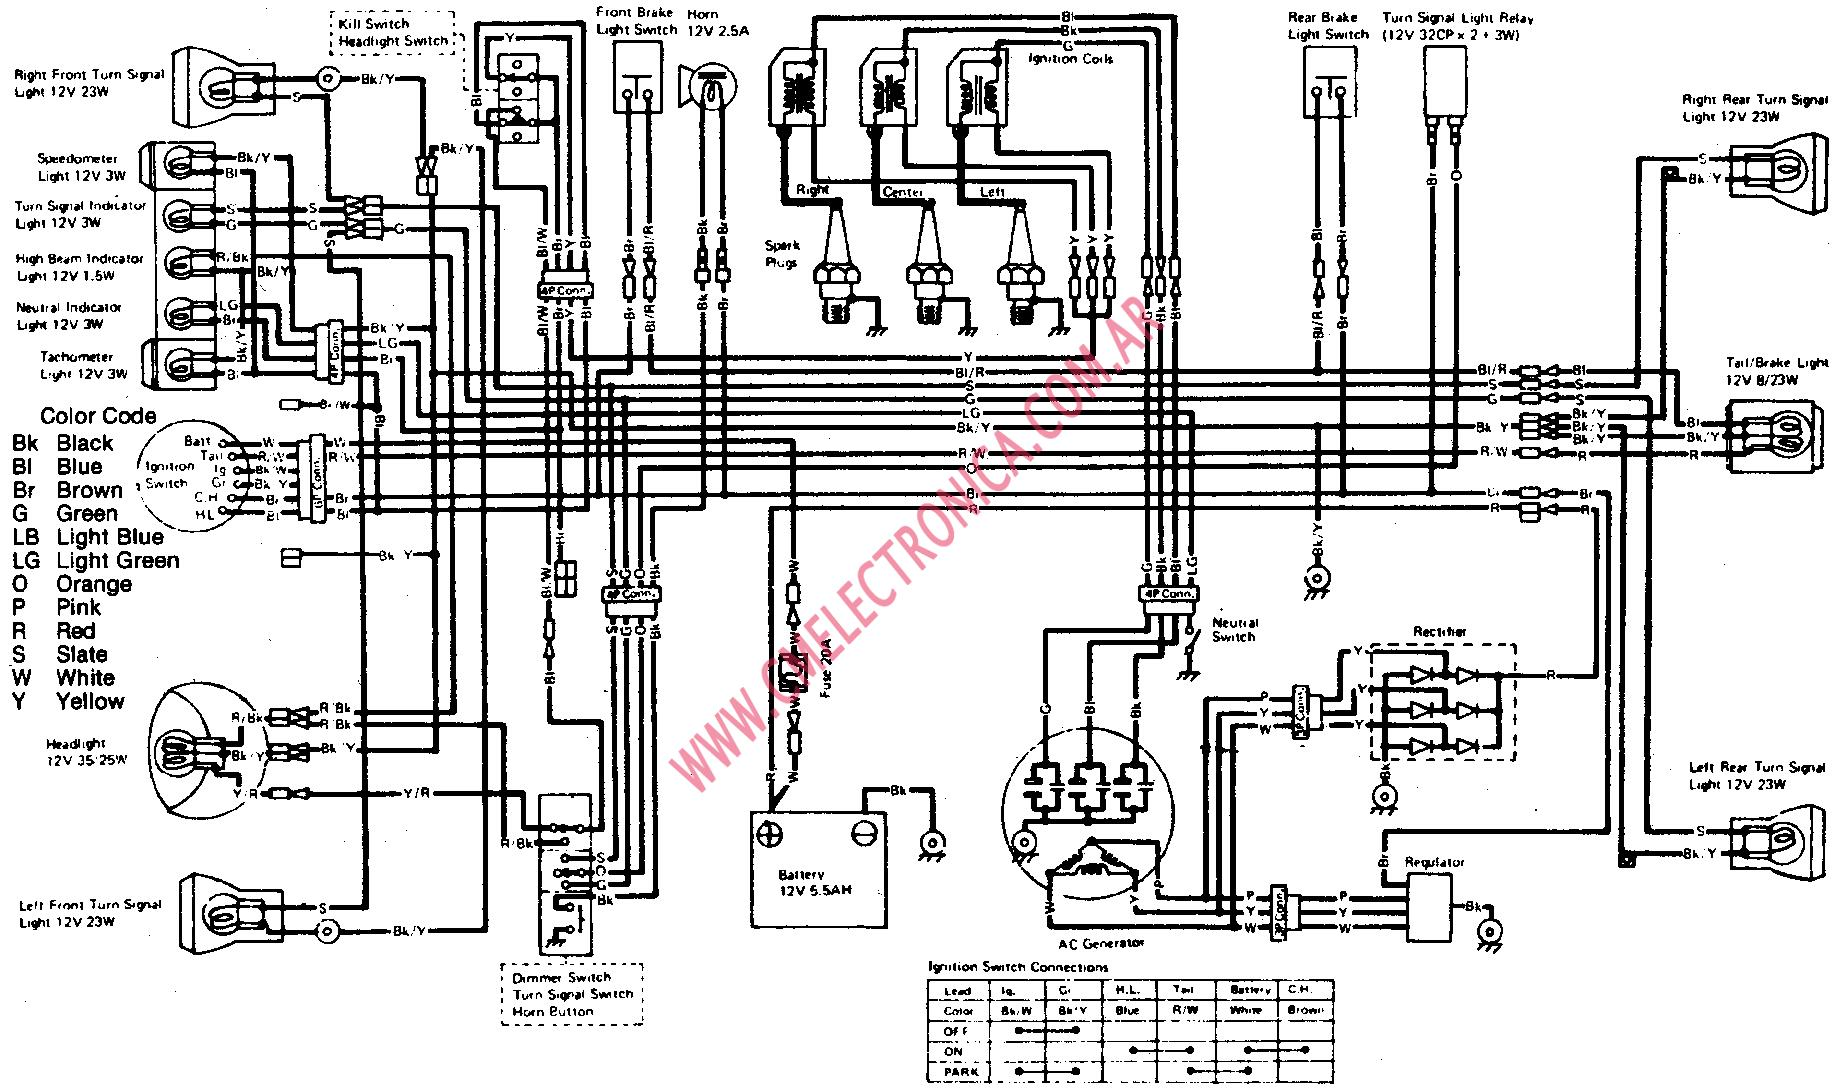 Kawasaki 220 Wiring Diagram - Wiring Diagram Direct dome-produce -  dome-produce.siciliabeb.it | 2005 Kawasaki Bayou Wiring Diagram |  | dome-produce.siciliabeb.it